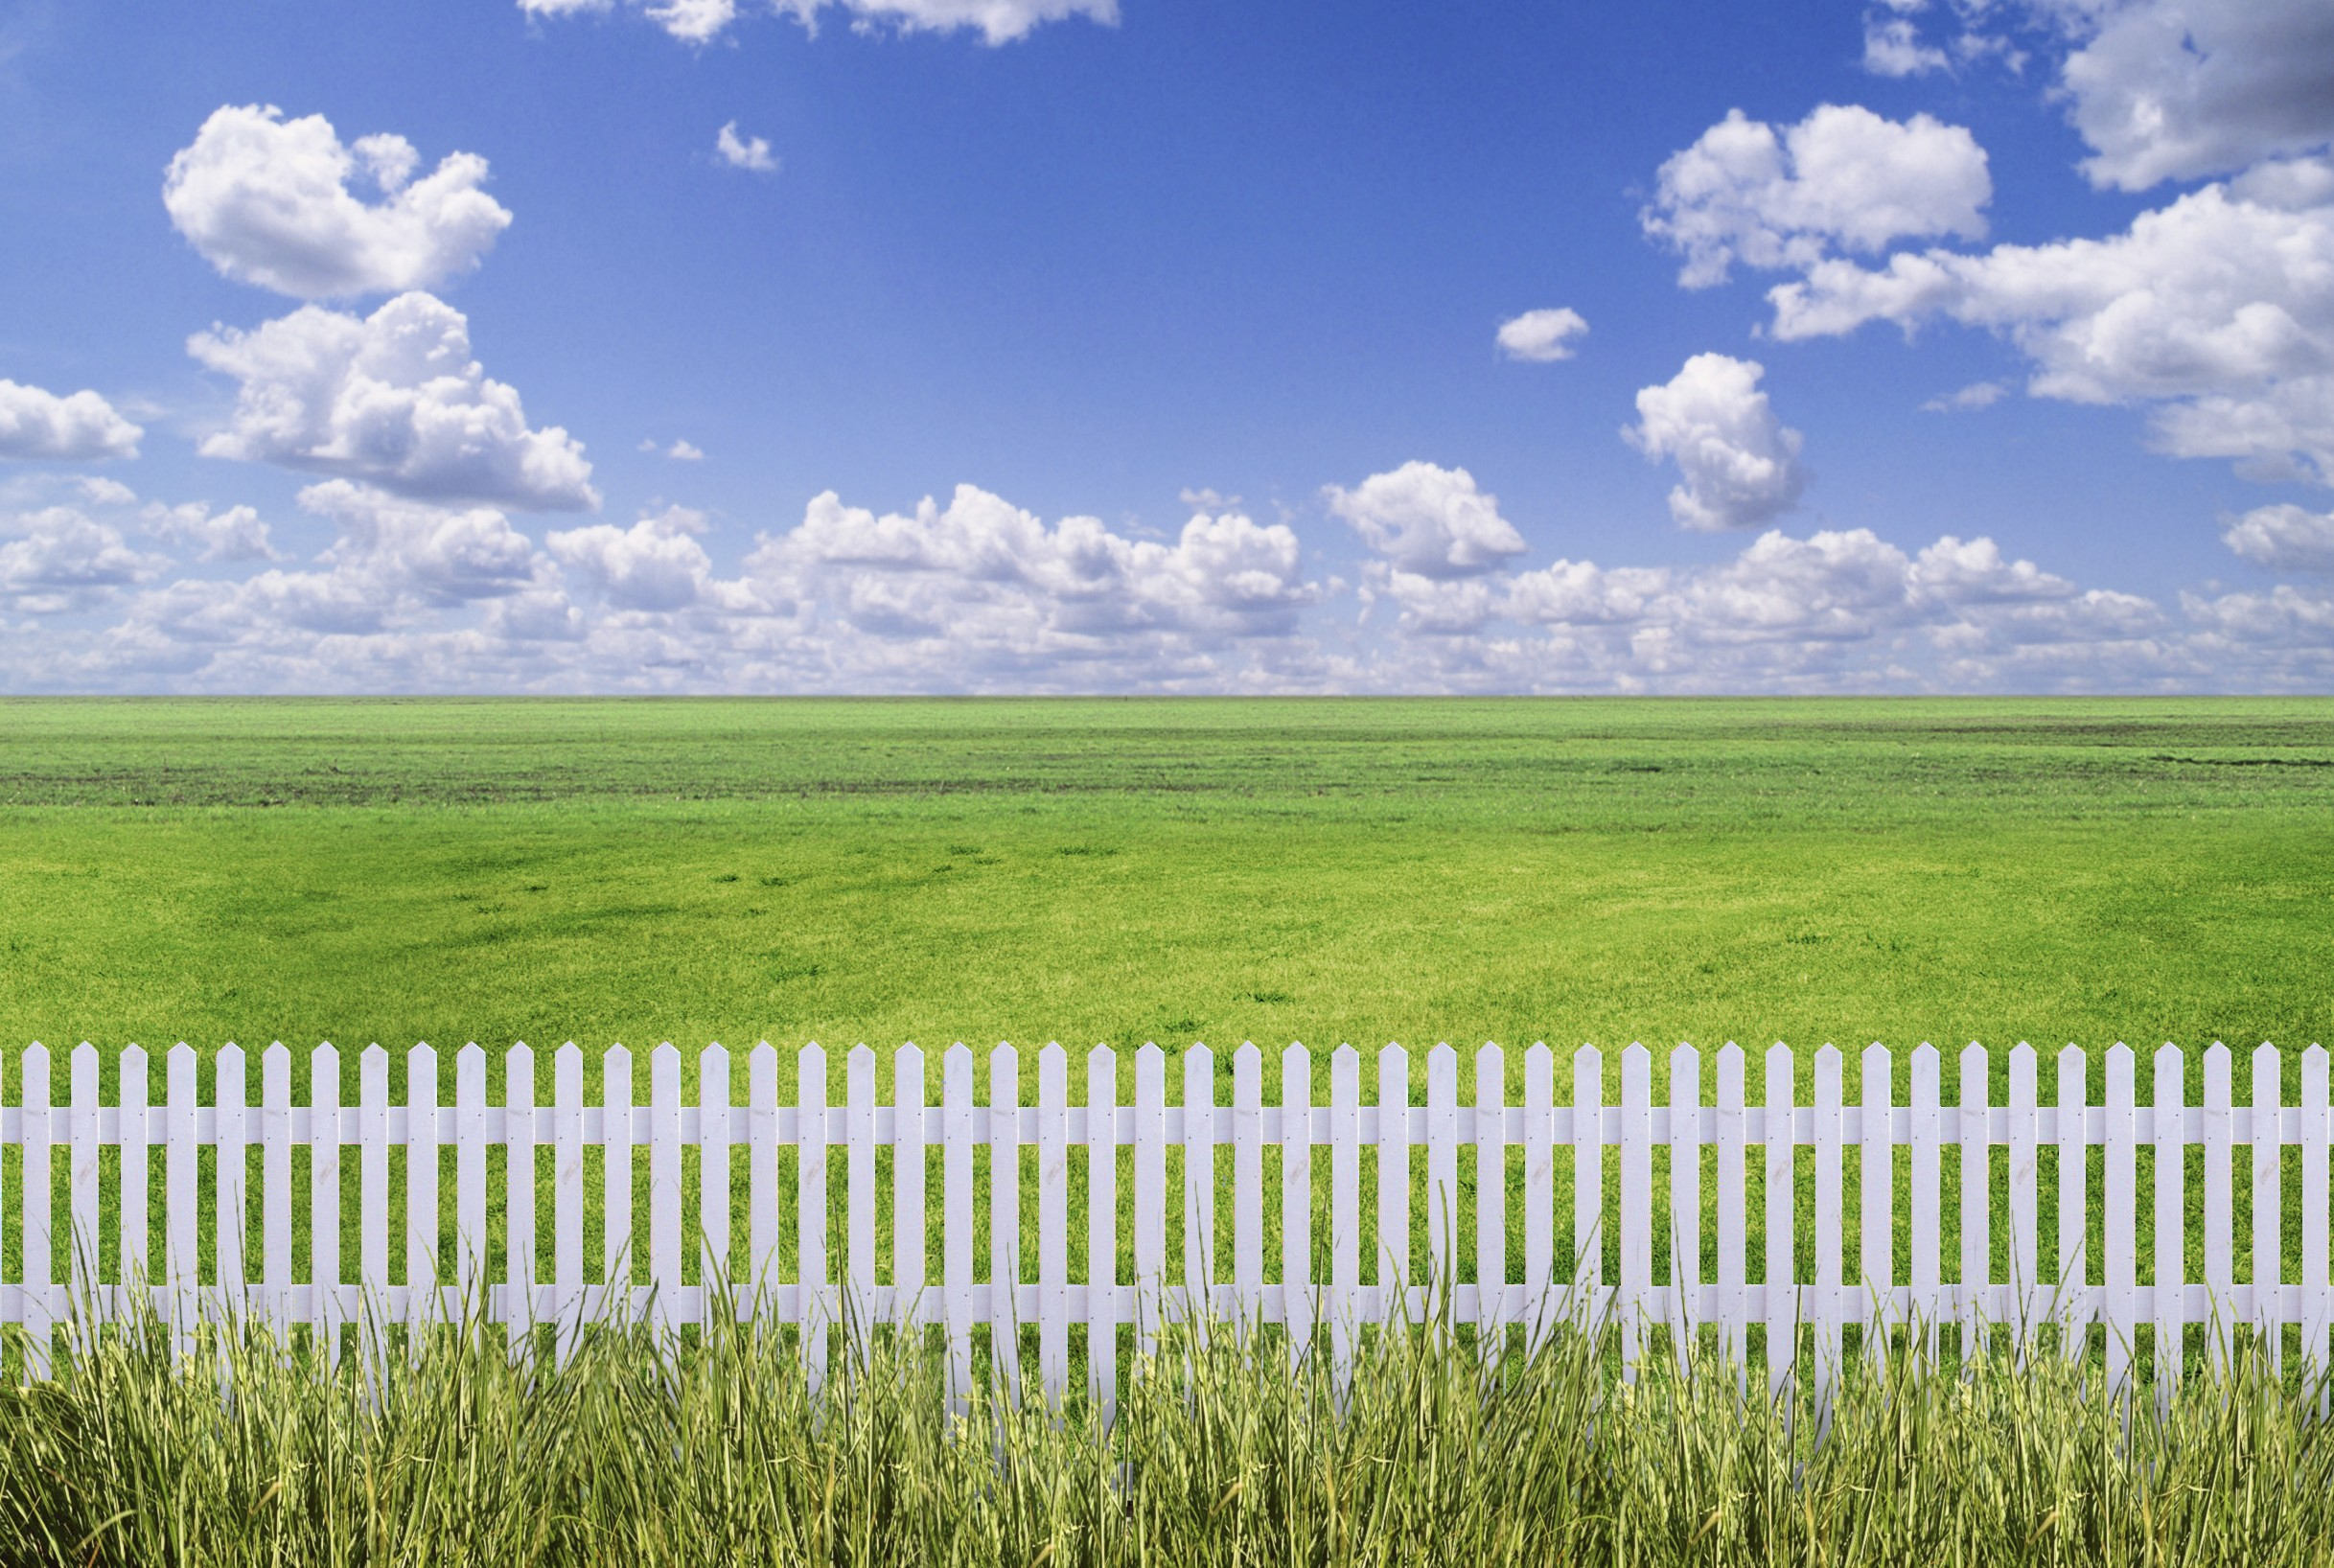 White picket fence, green grass, and blue skies.